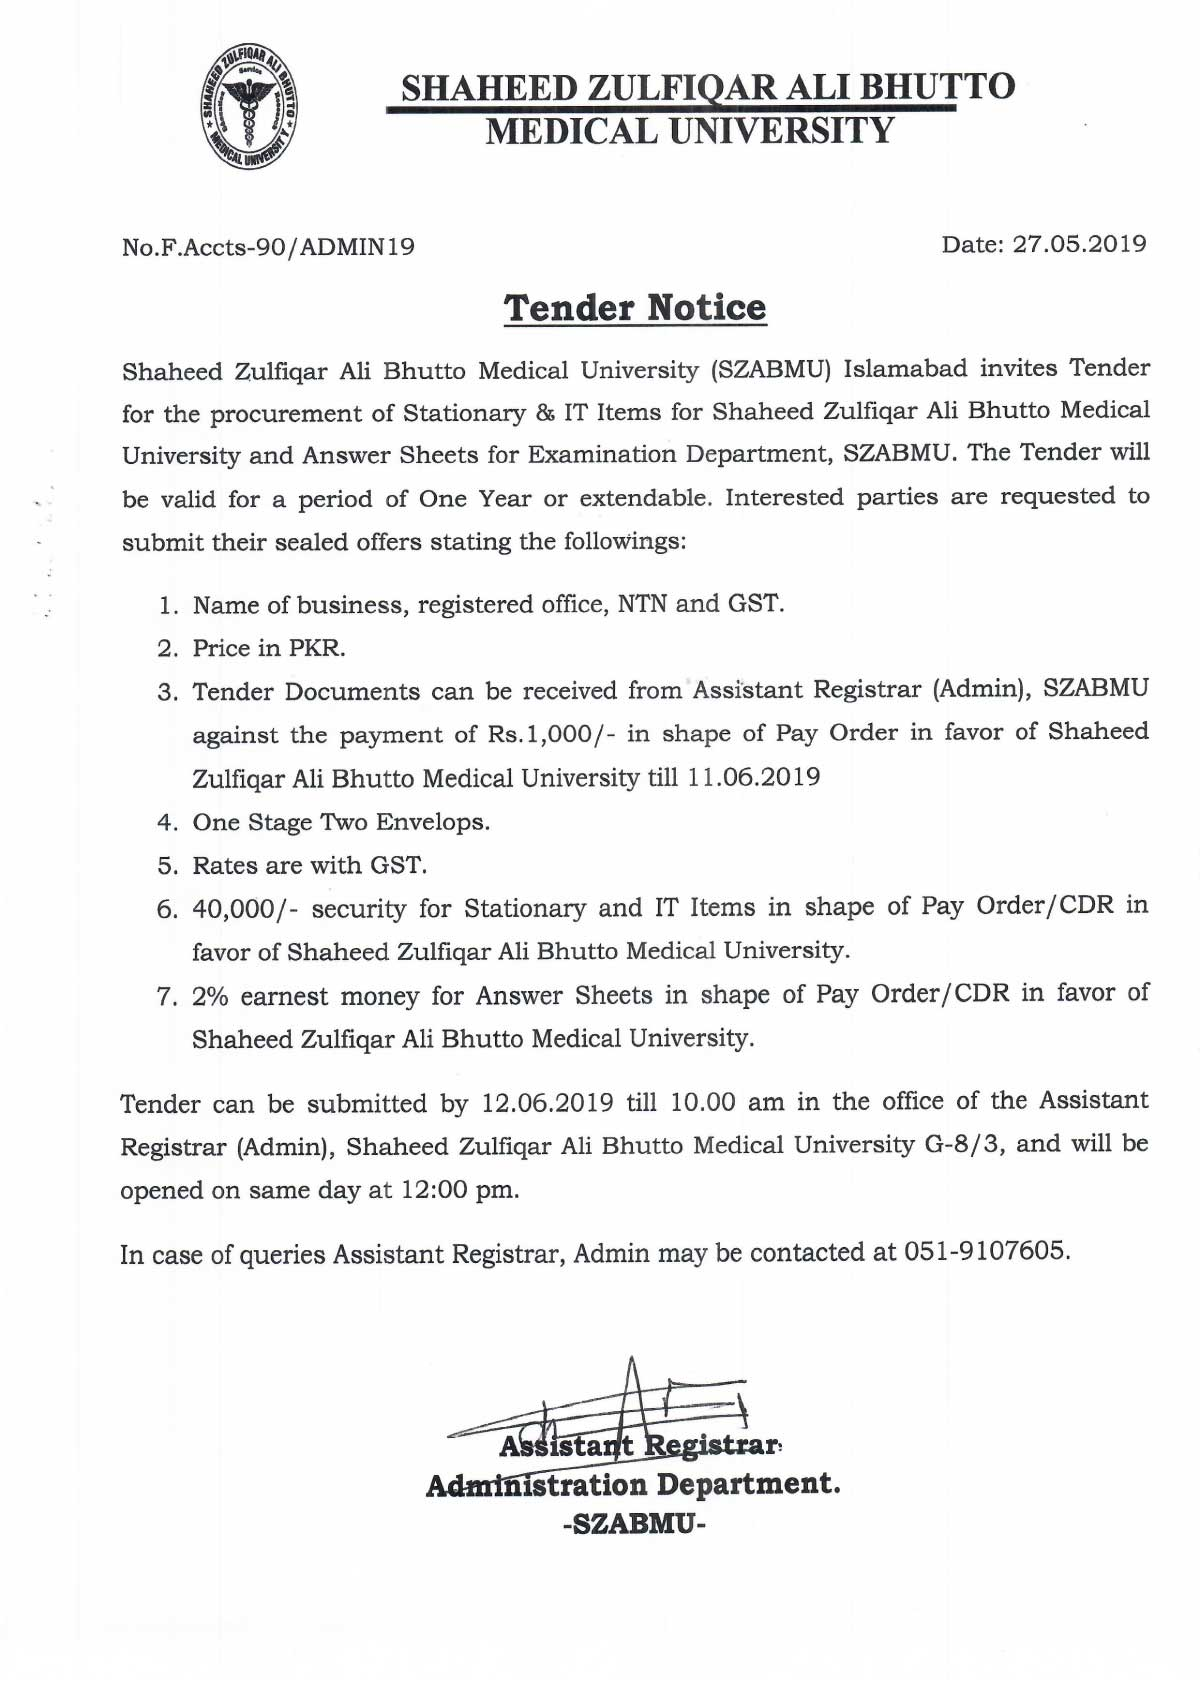 Tender Notice 27 May 2019